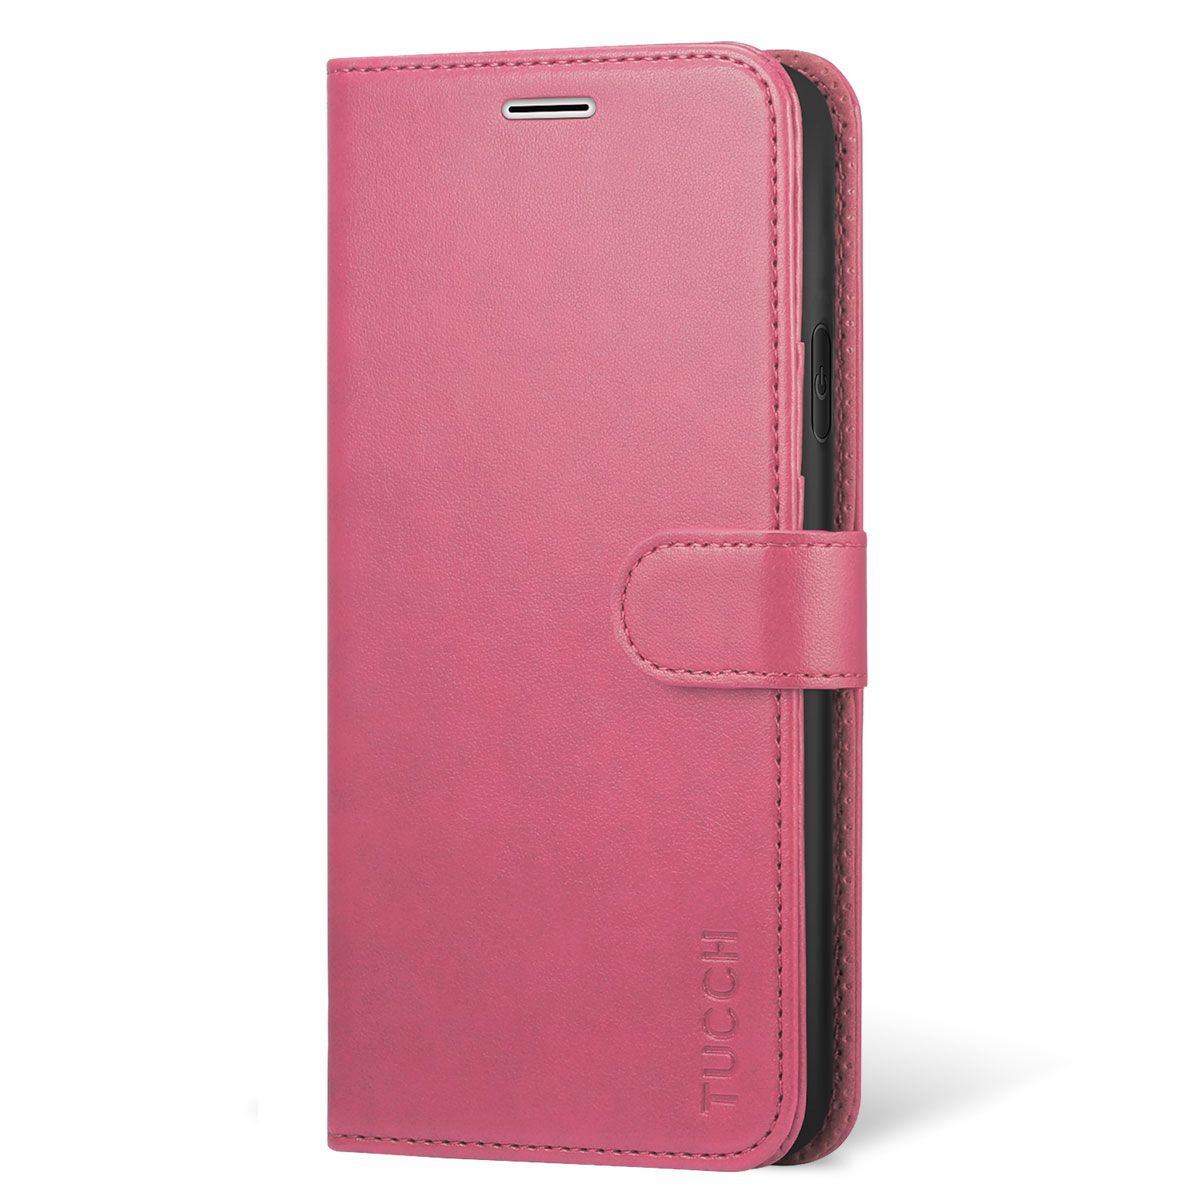 official photos 026f8 f0696 TUCCH iPhone XR Wallet Case - iPhone 10R Leather Cover, Stand, Flip Style -  Hot Pink